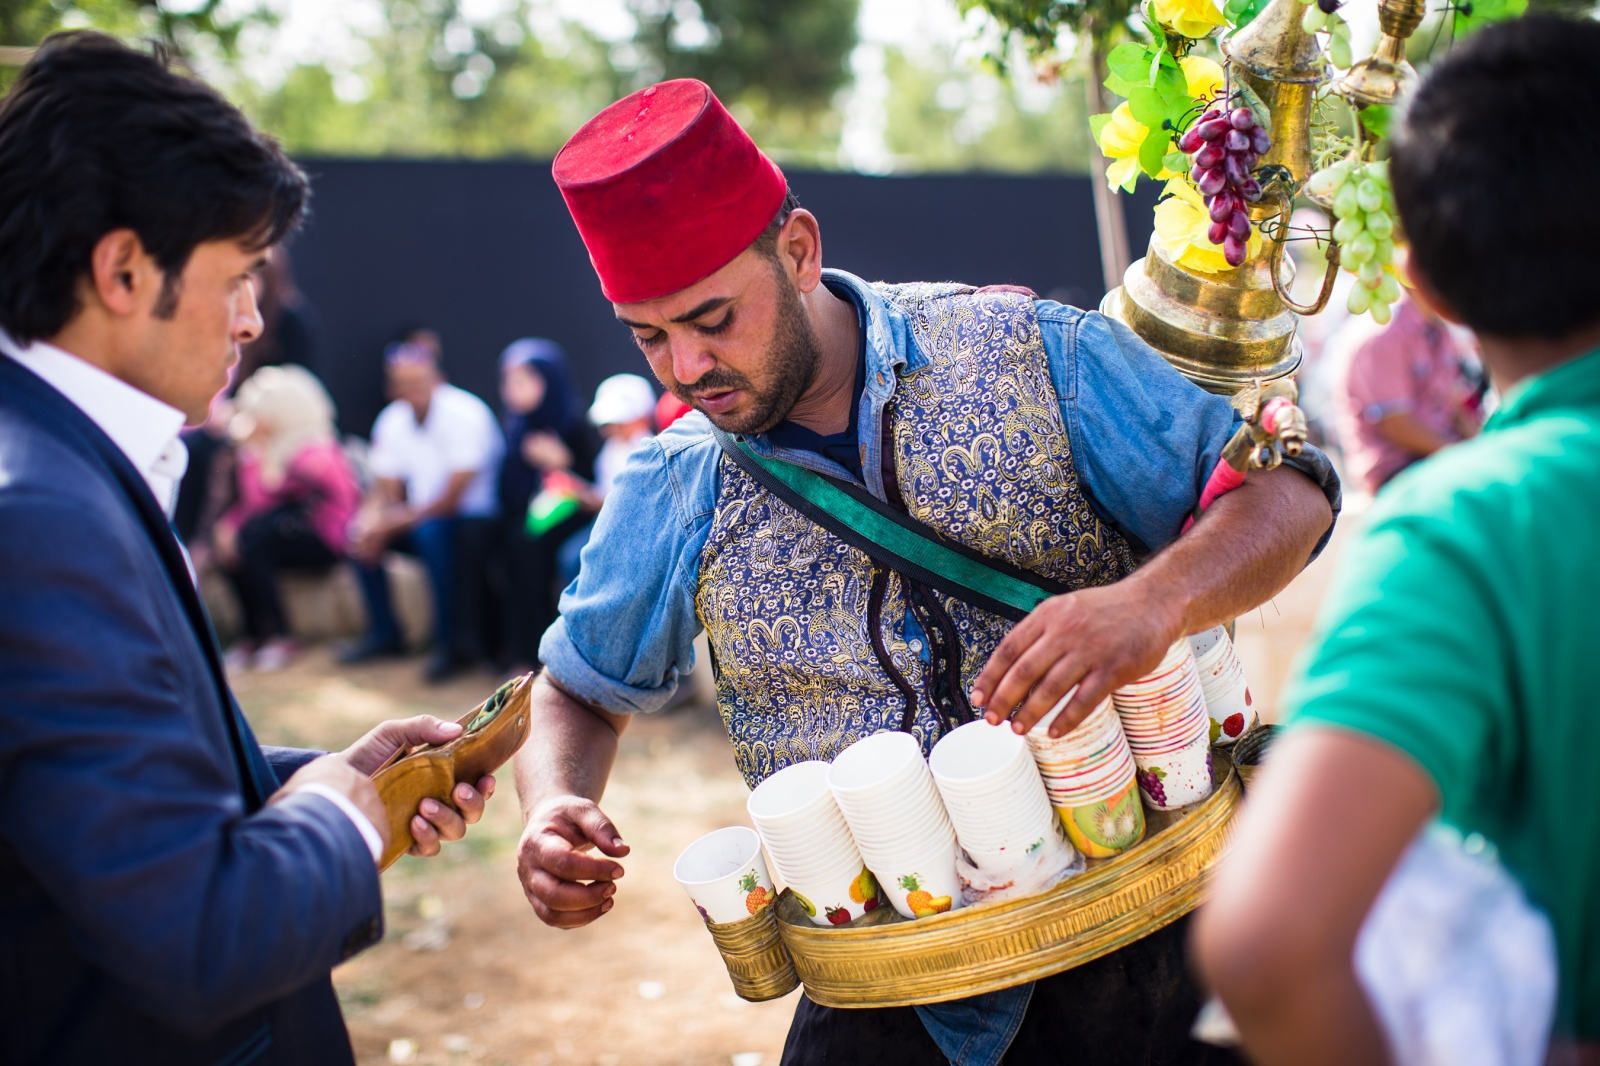 A Jordanian man wearing an Ottoman-style vest and fez, pours iced hibiscus juice for people attending celebrations at King Hussein Park in Amman, Jordan, marking the centennial of the Great Arab Revolt on June 3, 2016.